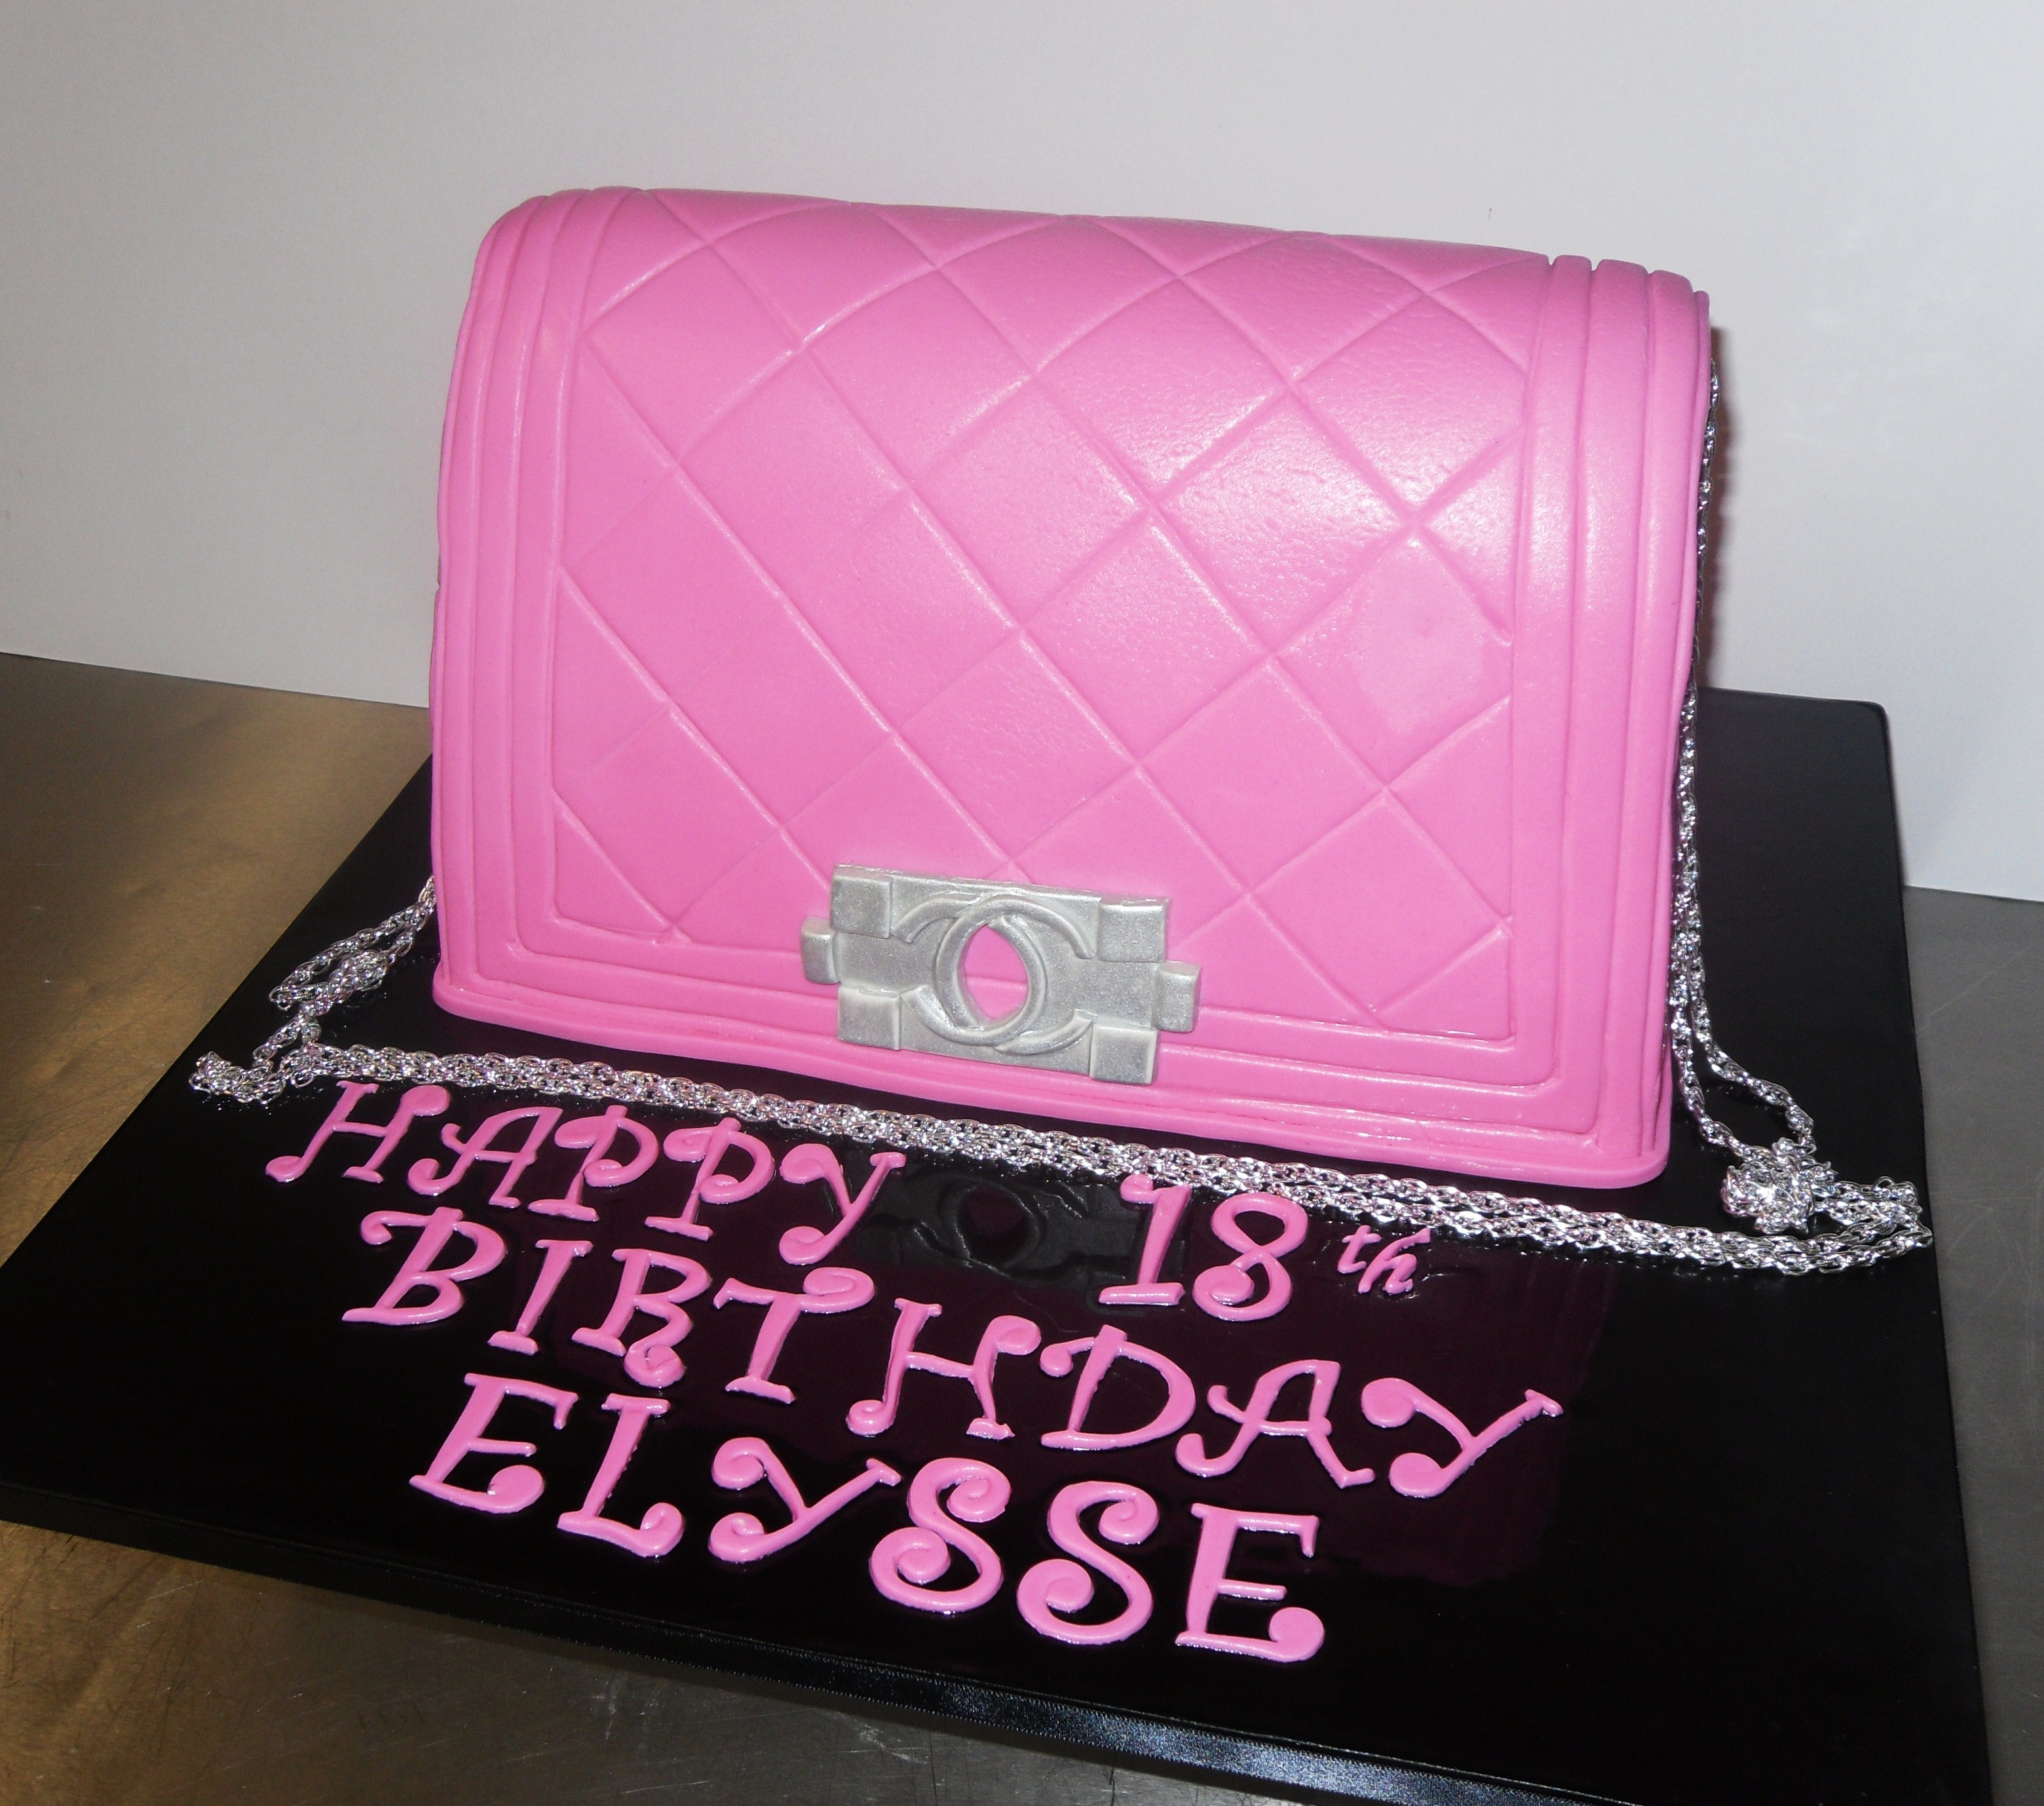 81a4eed92ab5 Pink chanel bag cake - Annette s Heavenly Cakes